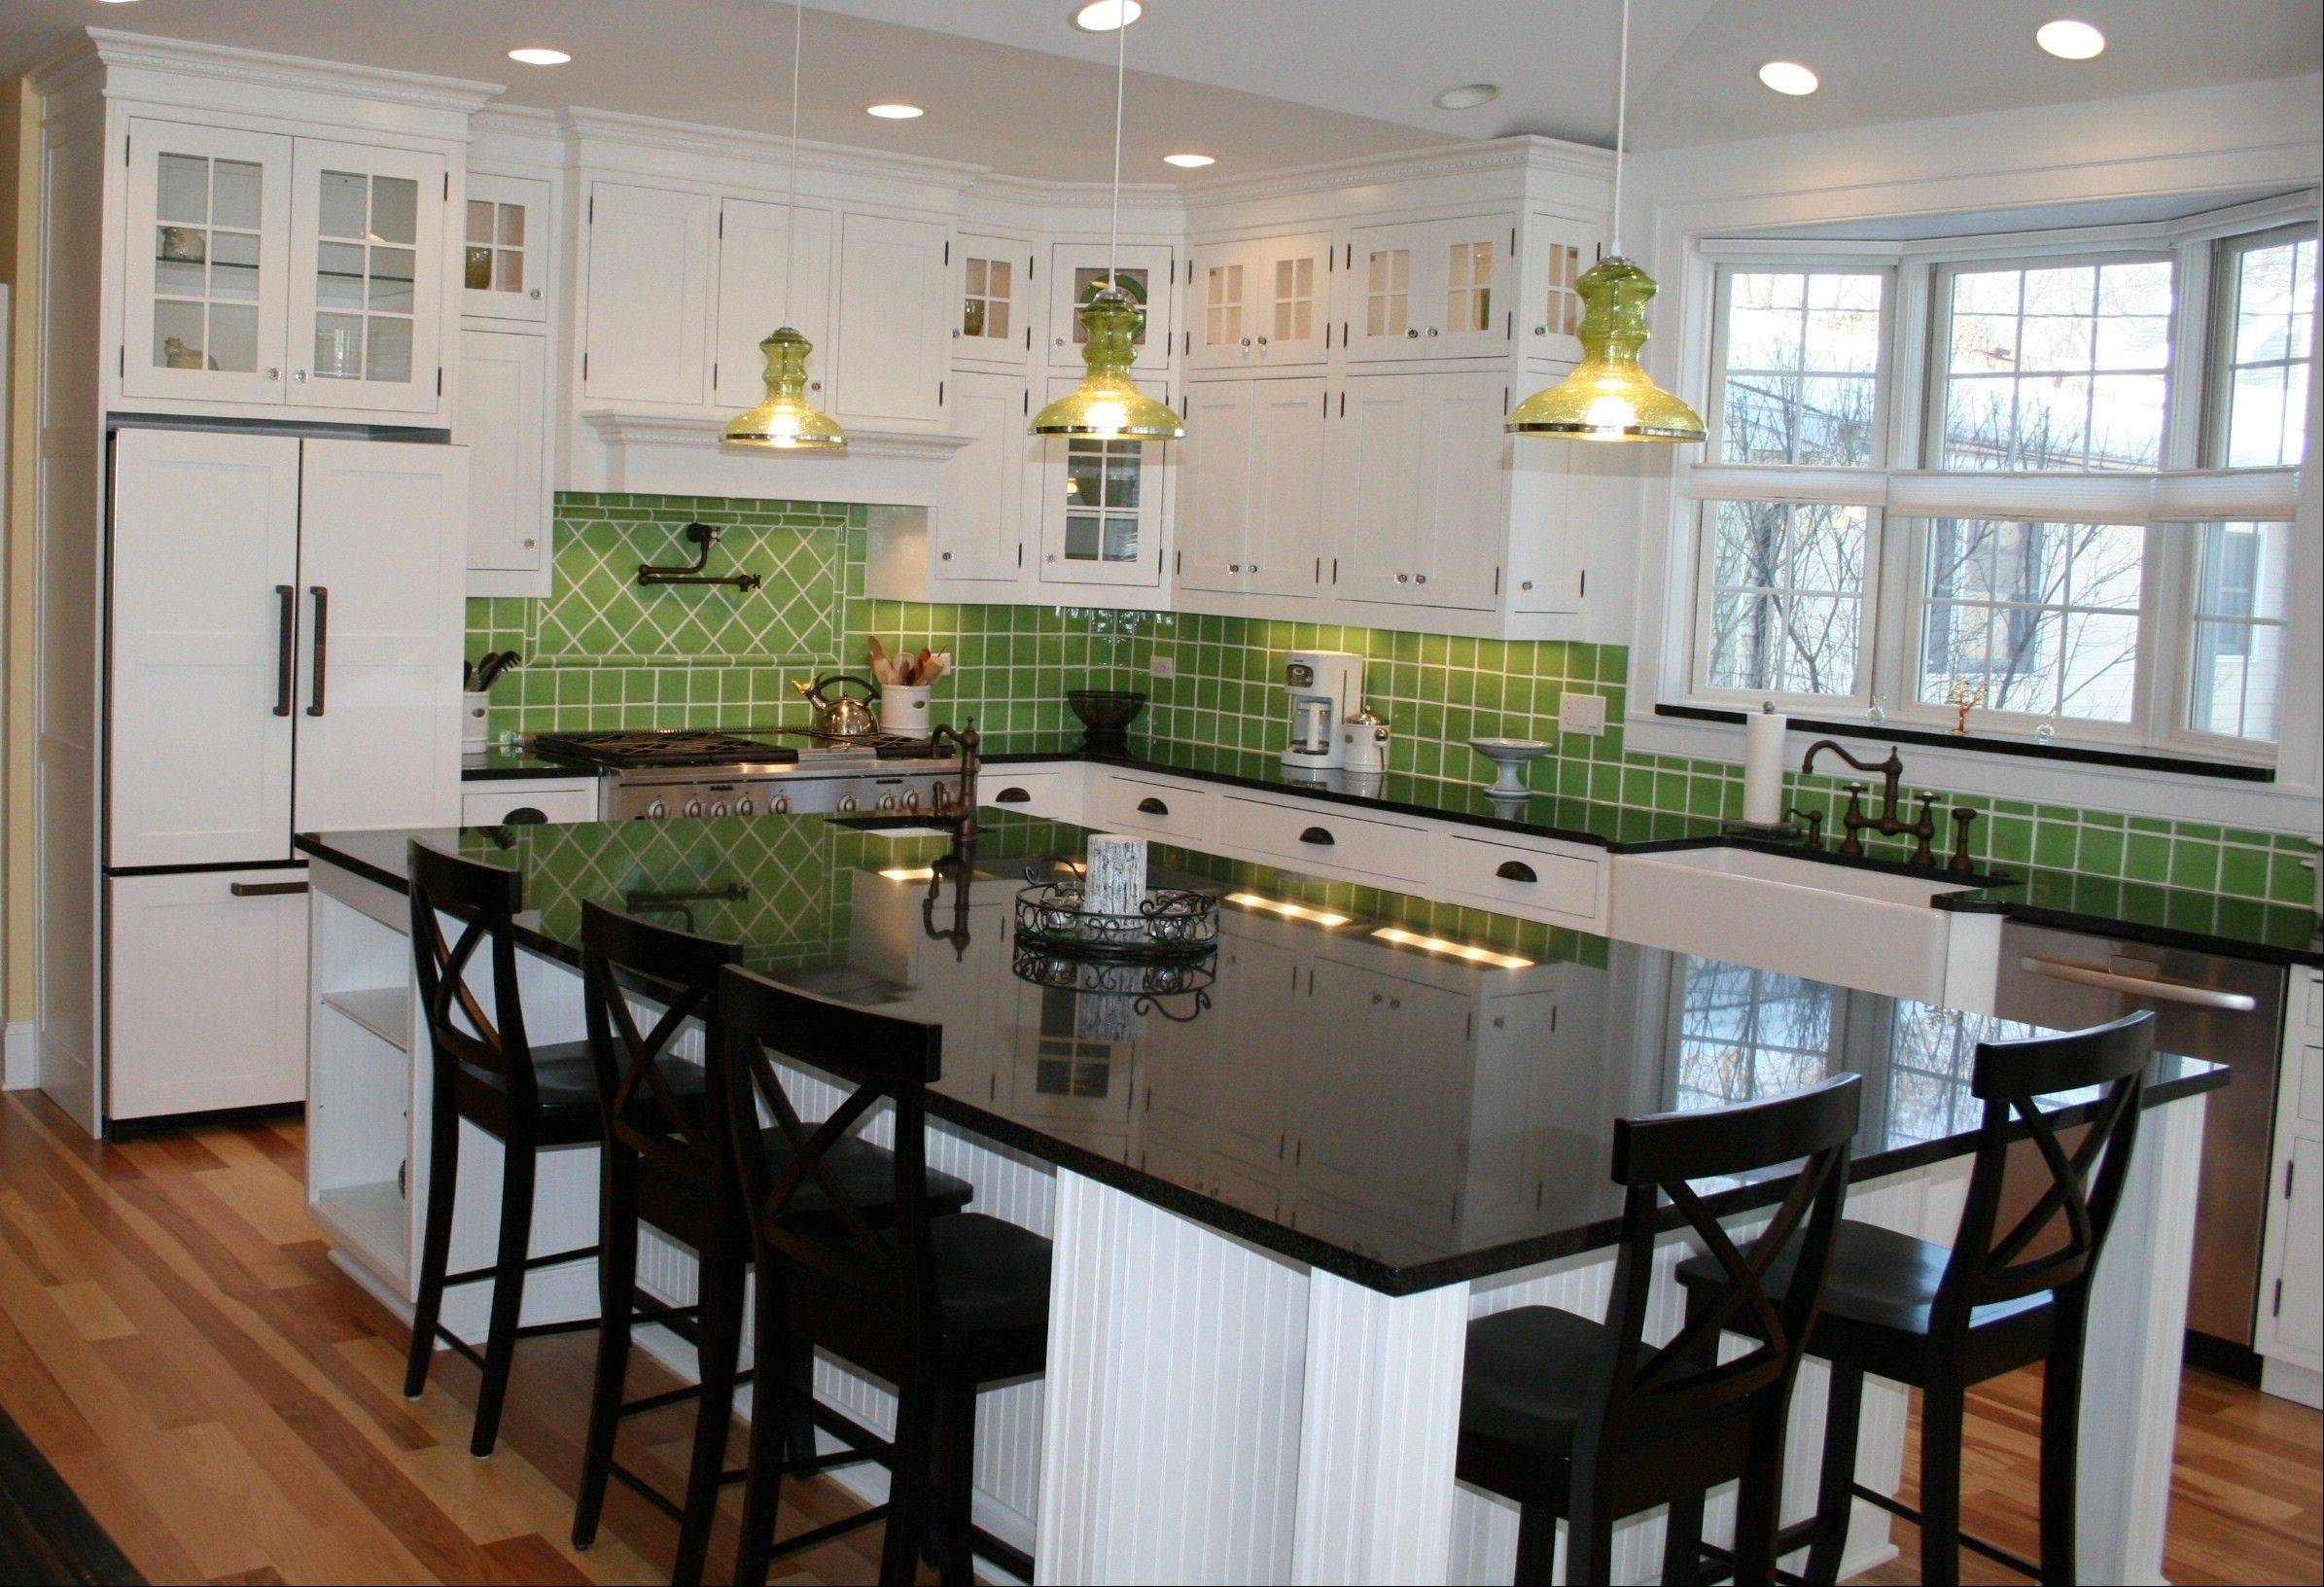 Solid granite backsplashes are no longer as popular in the kitchen, giving way to stone and colorful tile.